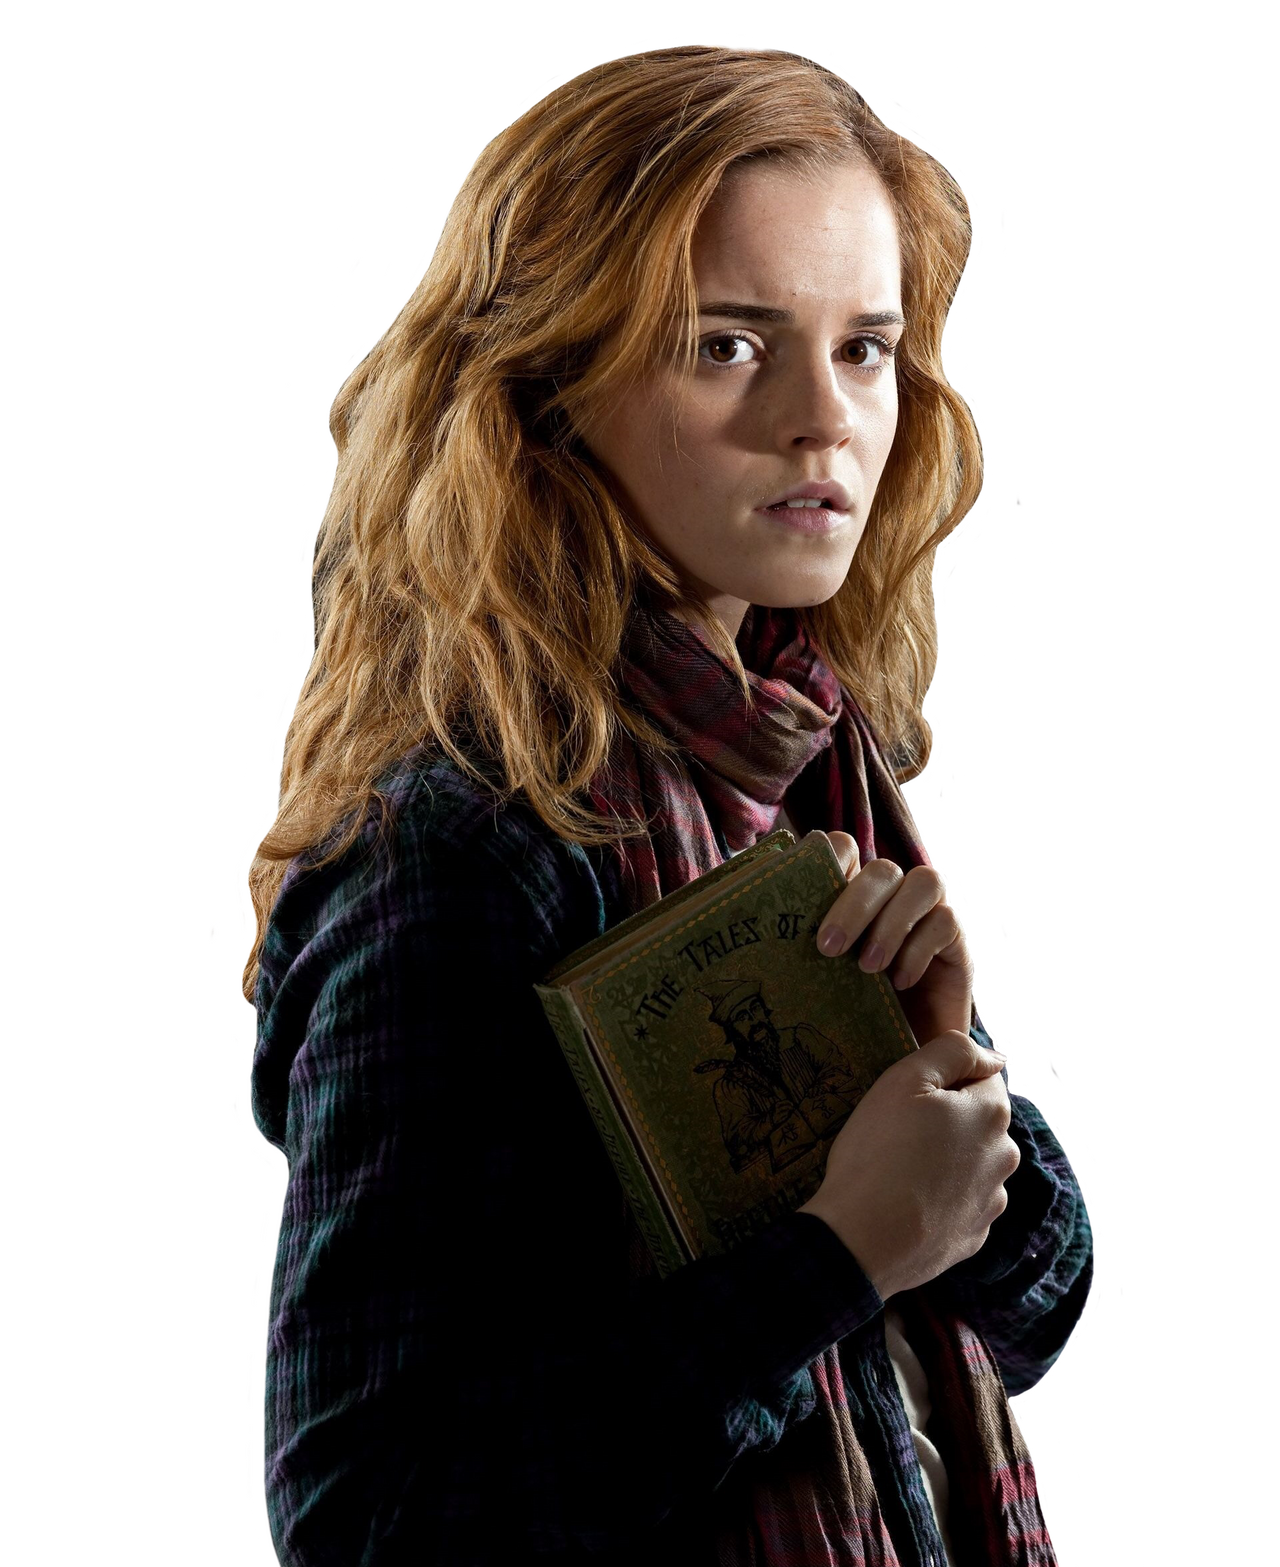 Pin By Annaxor G On My Saves In 2021 Hermione Granger Hermione Emma Watson